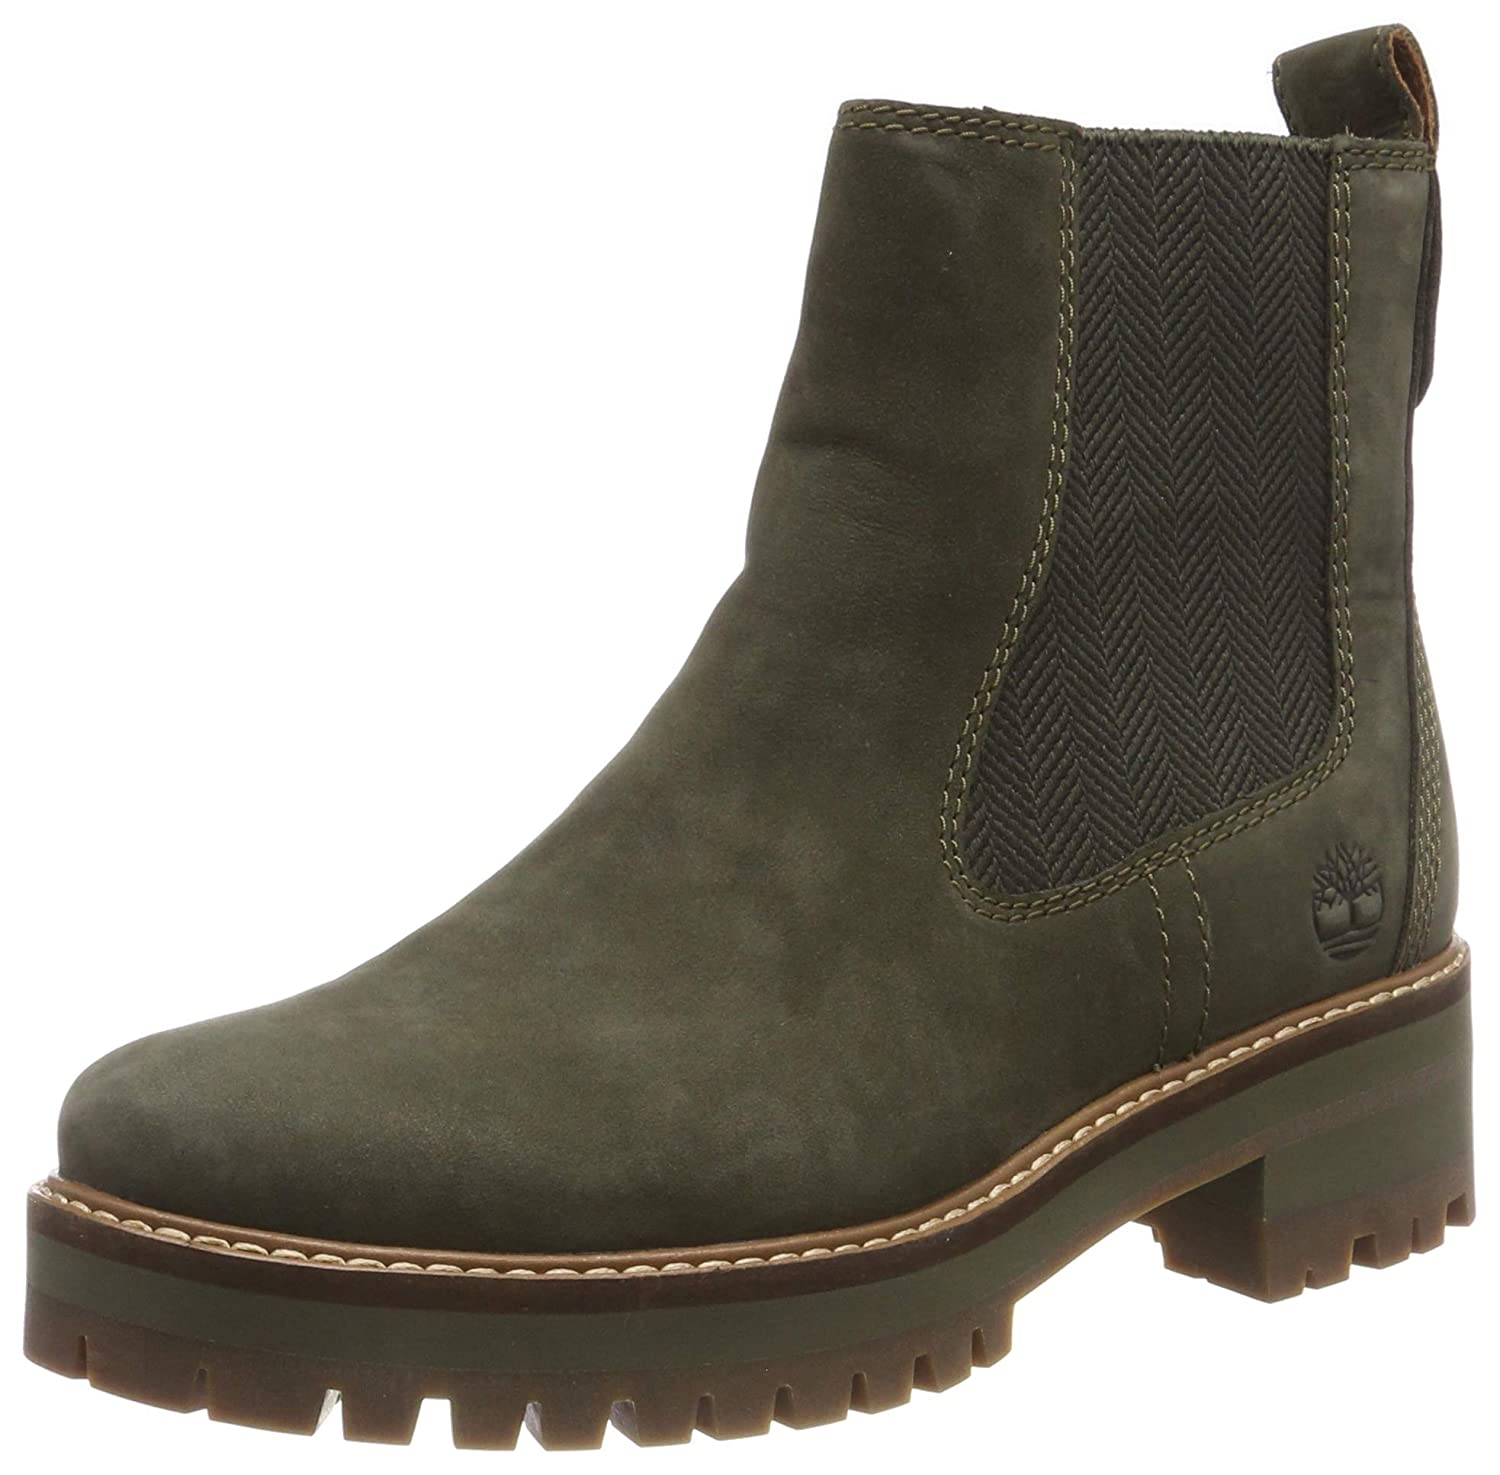 09ad18b5942 Timberland Unisex Adults' Courmayeur Valley Chelsea A1j5u Classic Boots